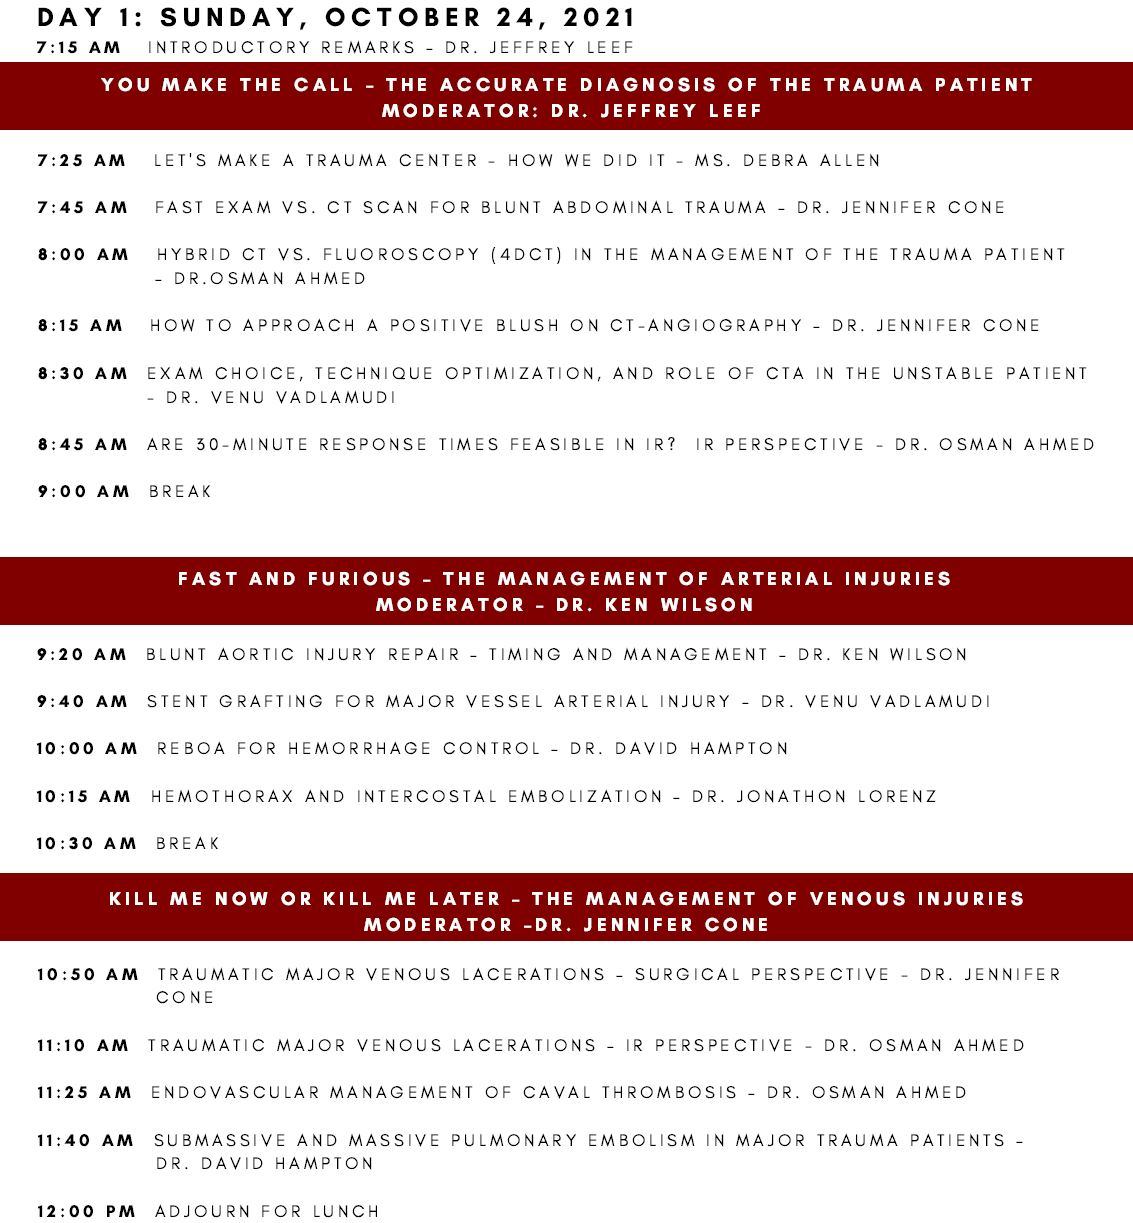 How to Save a Life IR and Surgical Management of the Trauma Patient Day 1 Schedule